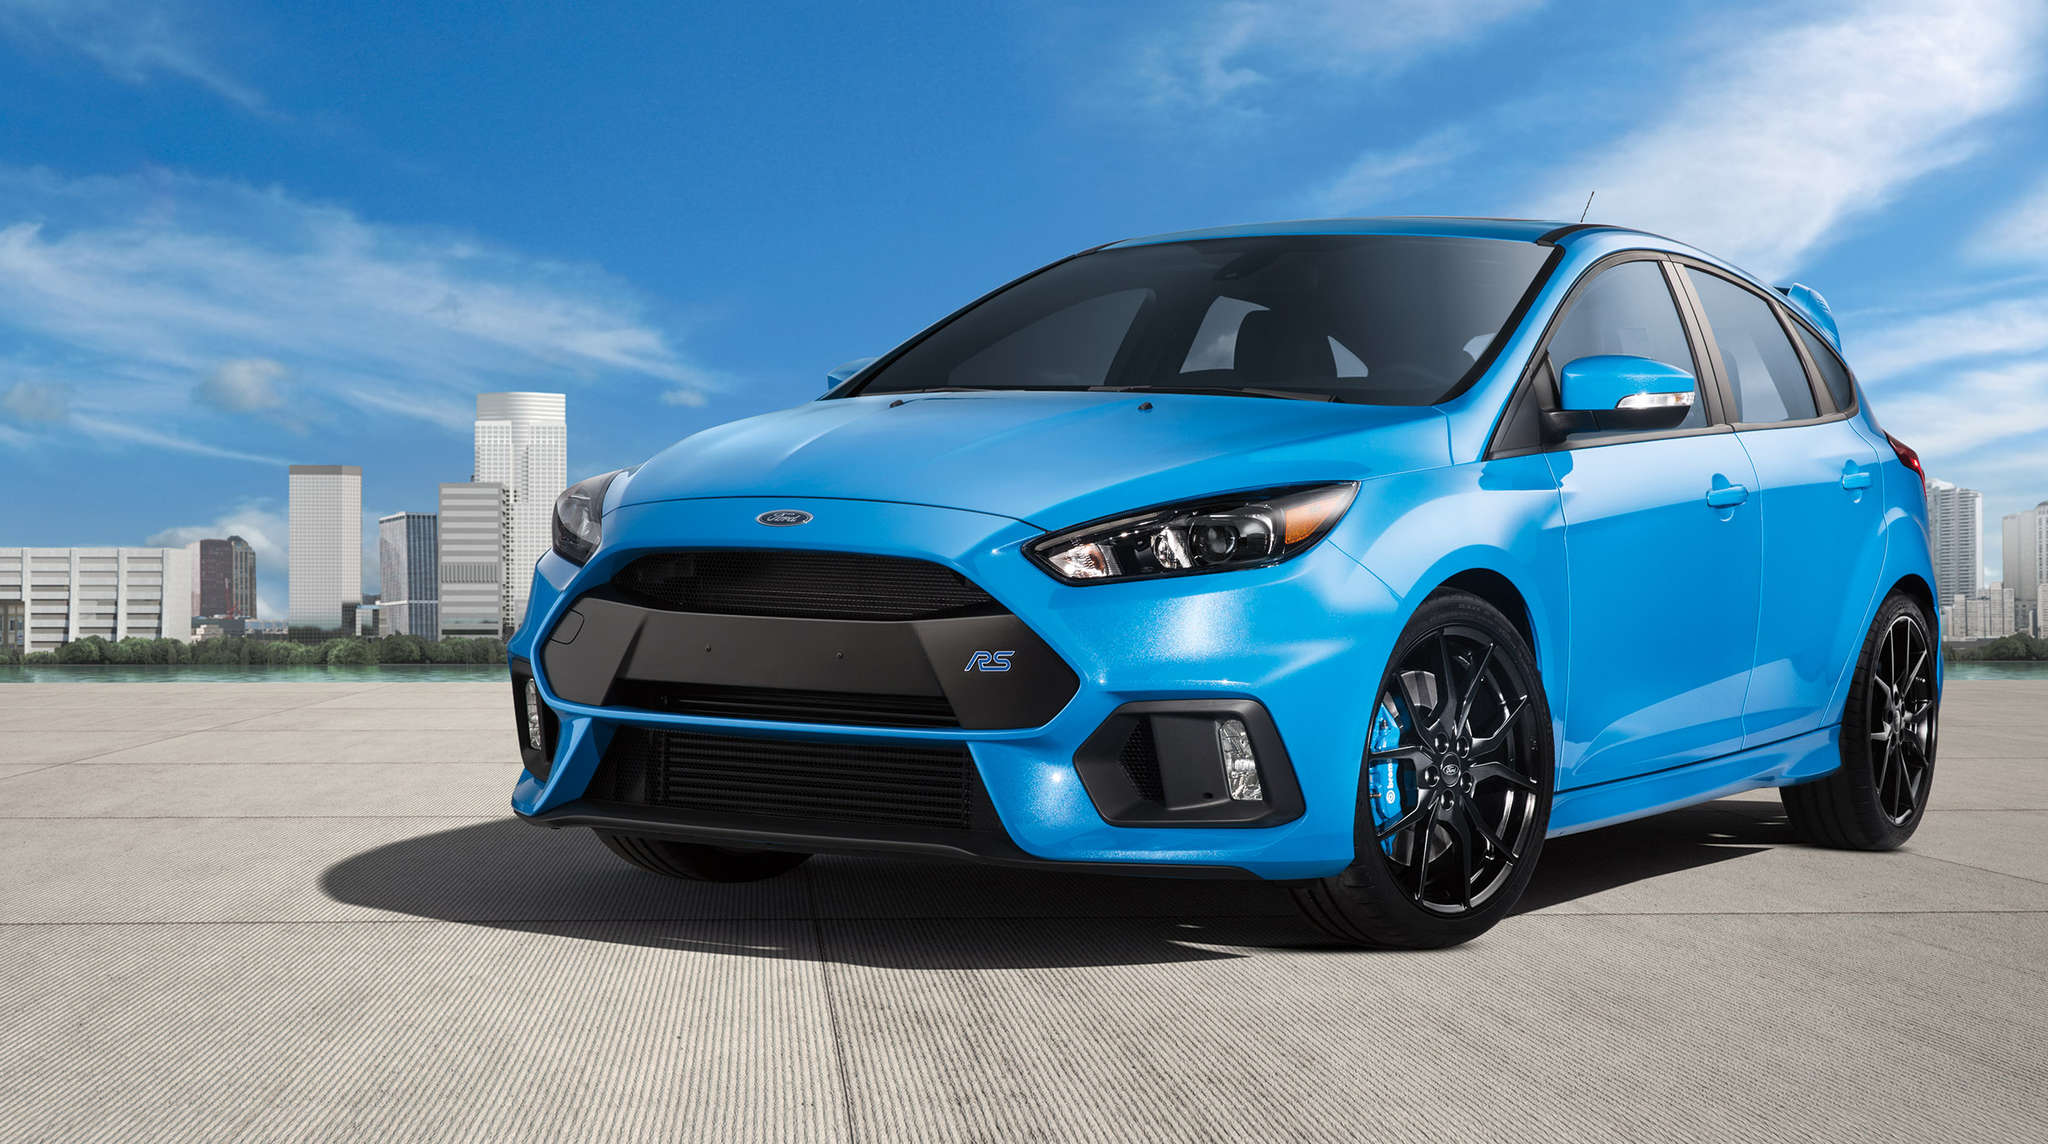 The 2017 Ford Focus RS offers a practical hatchback configuration, but legroom in the rear seats is a little tight.